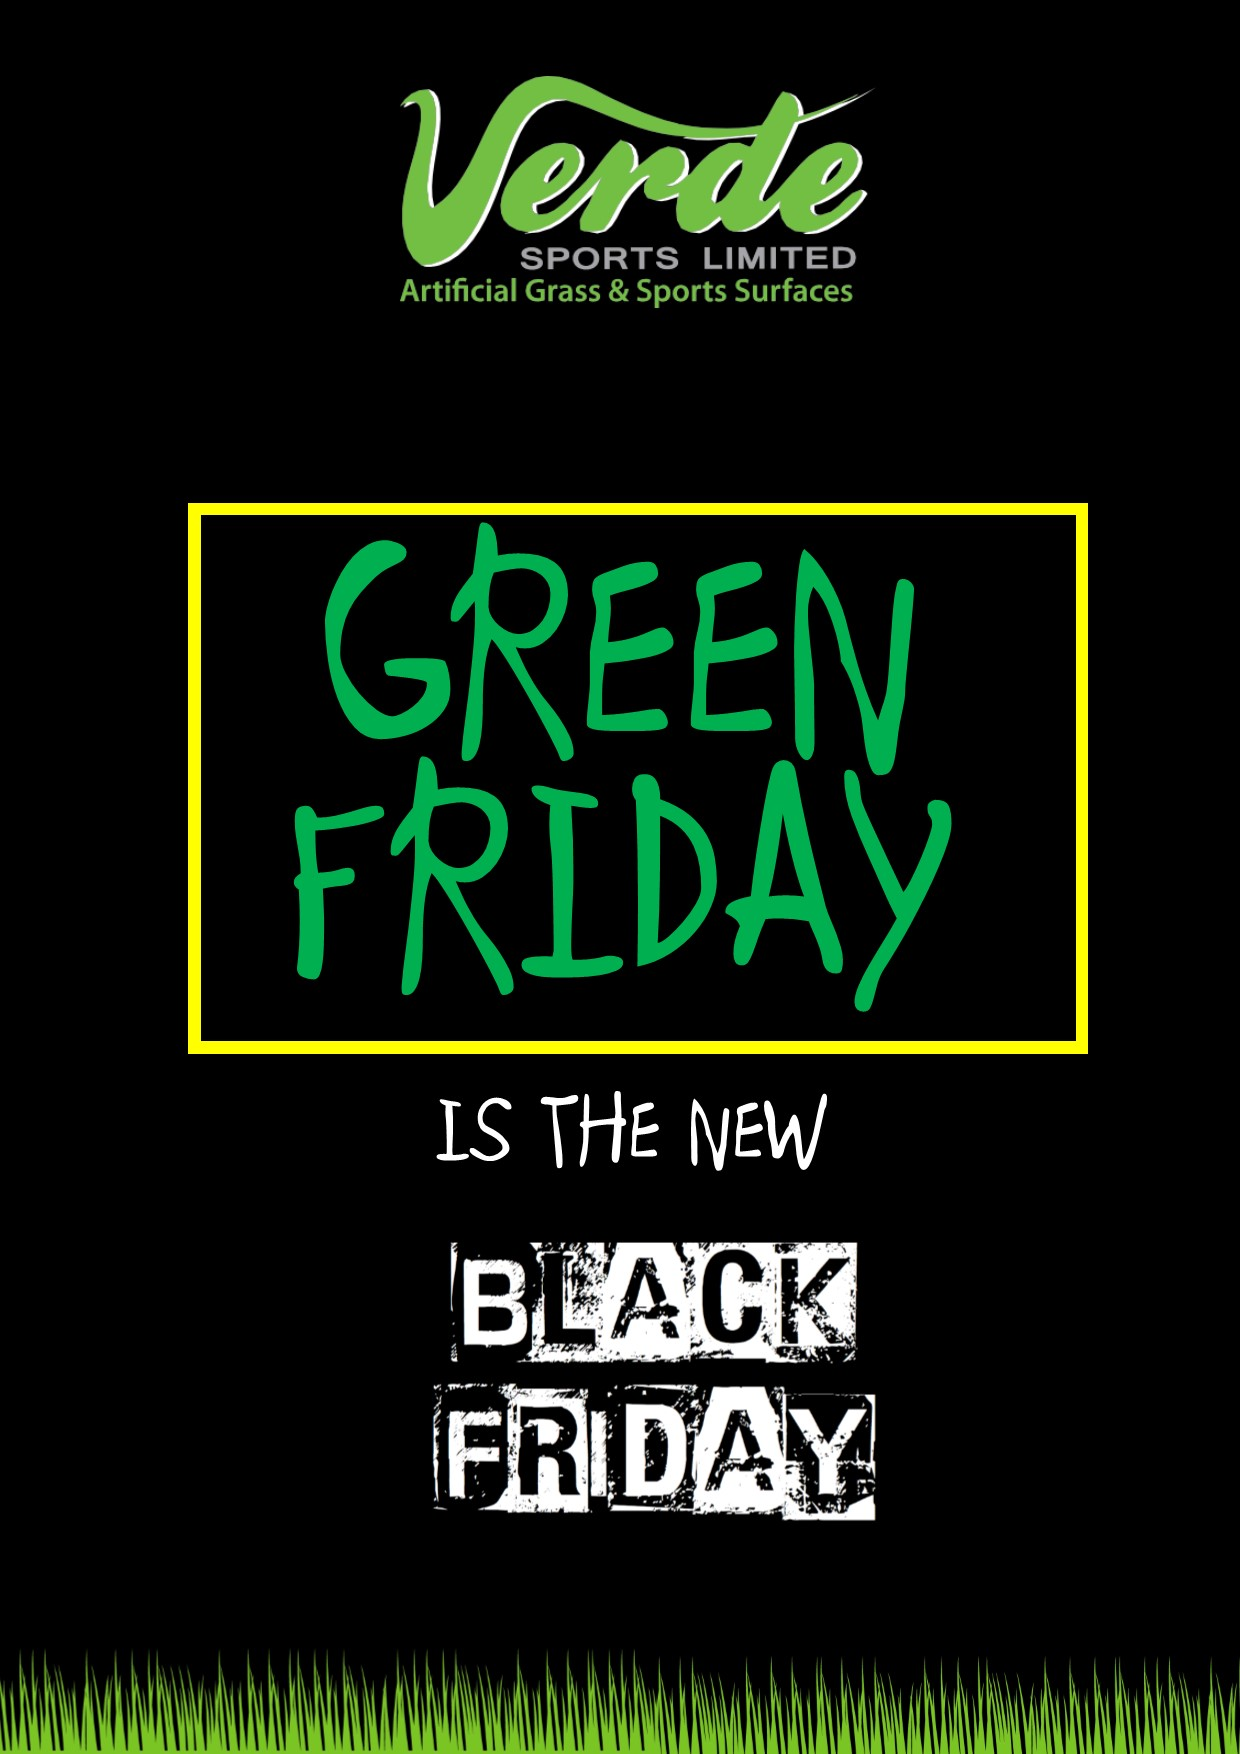 Green Friday Is The New Black Friday